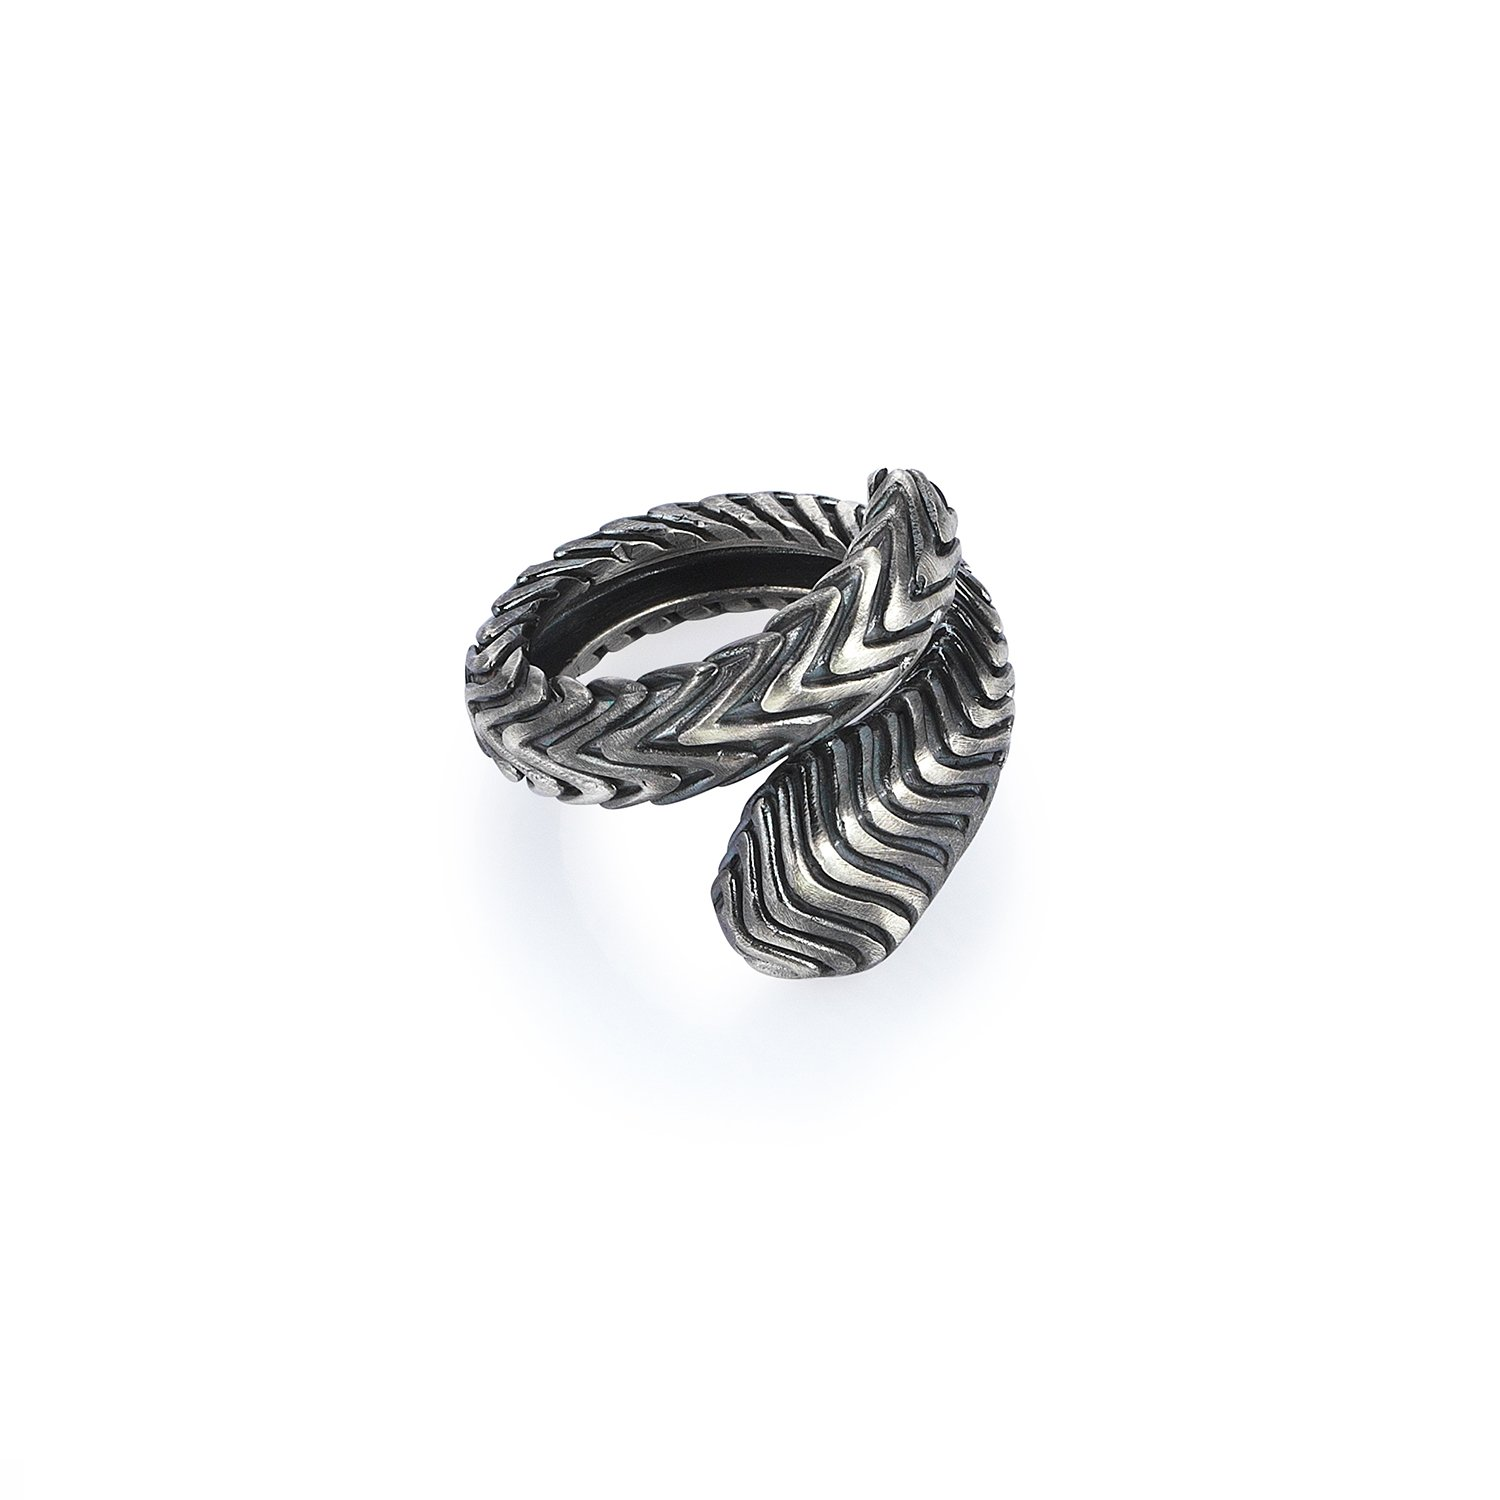 Oxidised Silver Serpi Ring